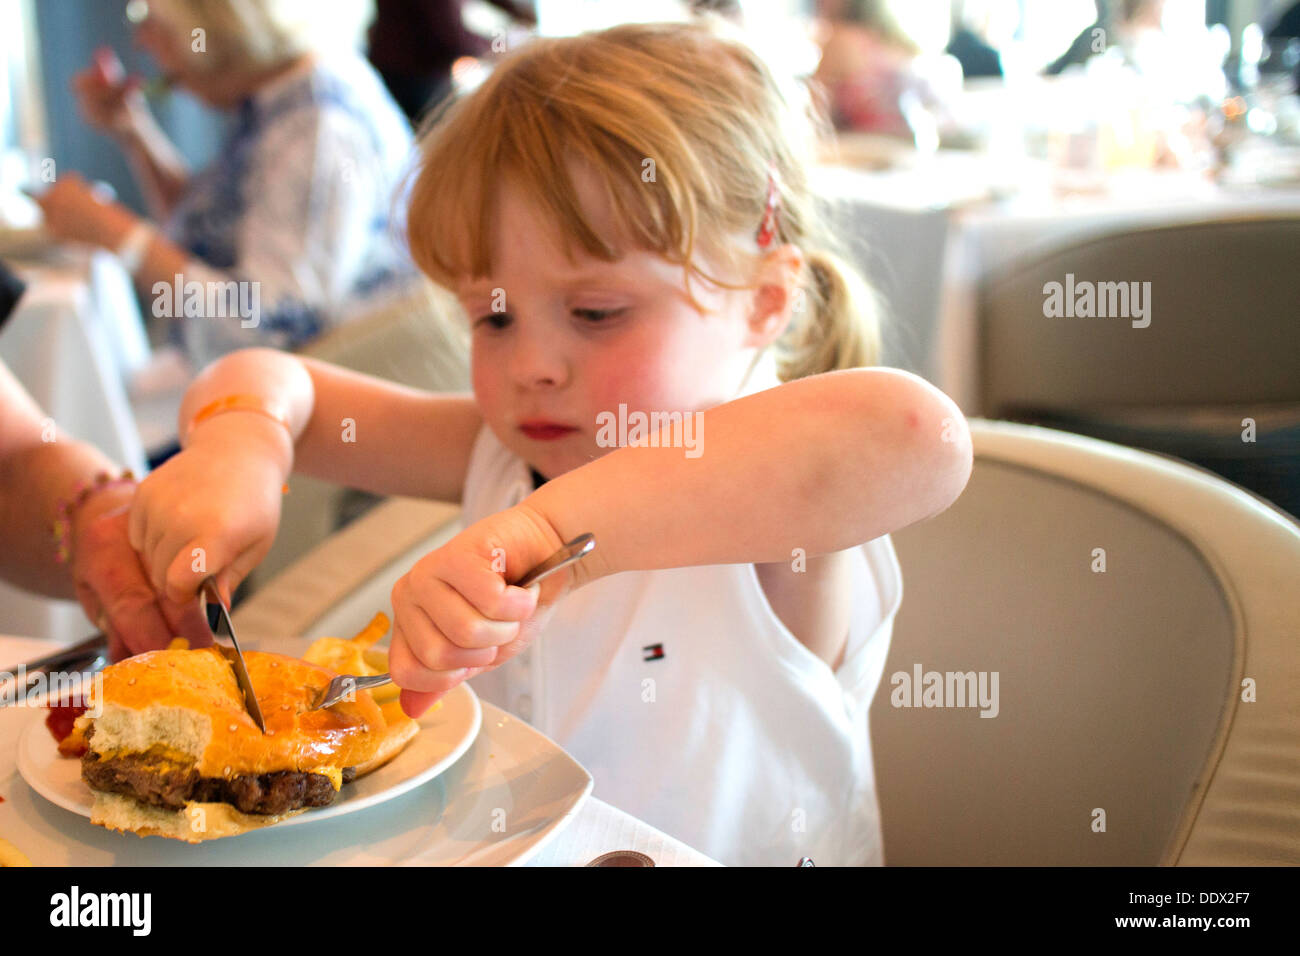 Four year old girl cutting into a cheeseburger - Stock Image